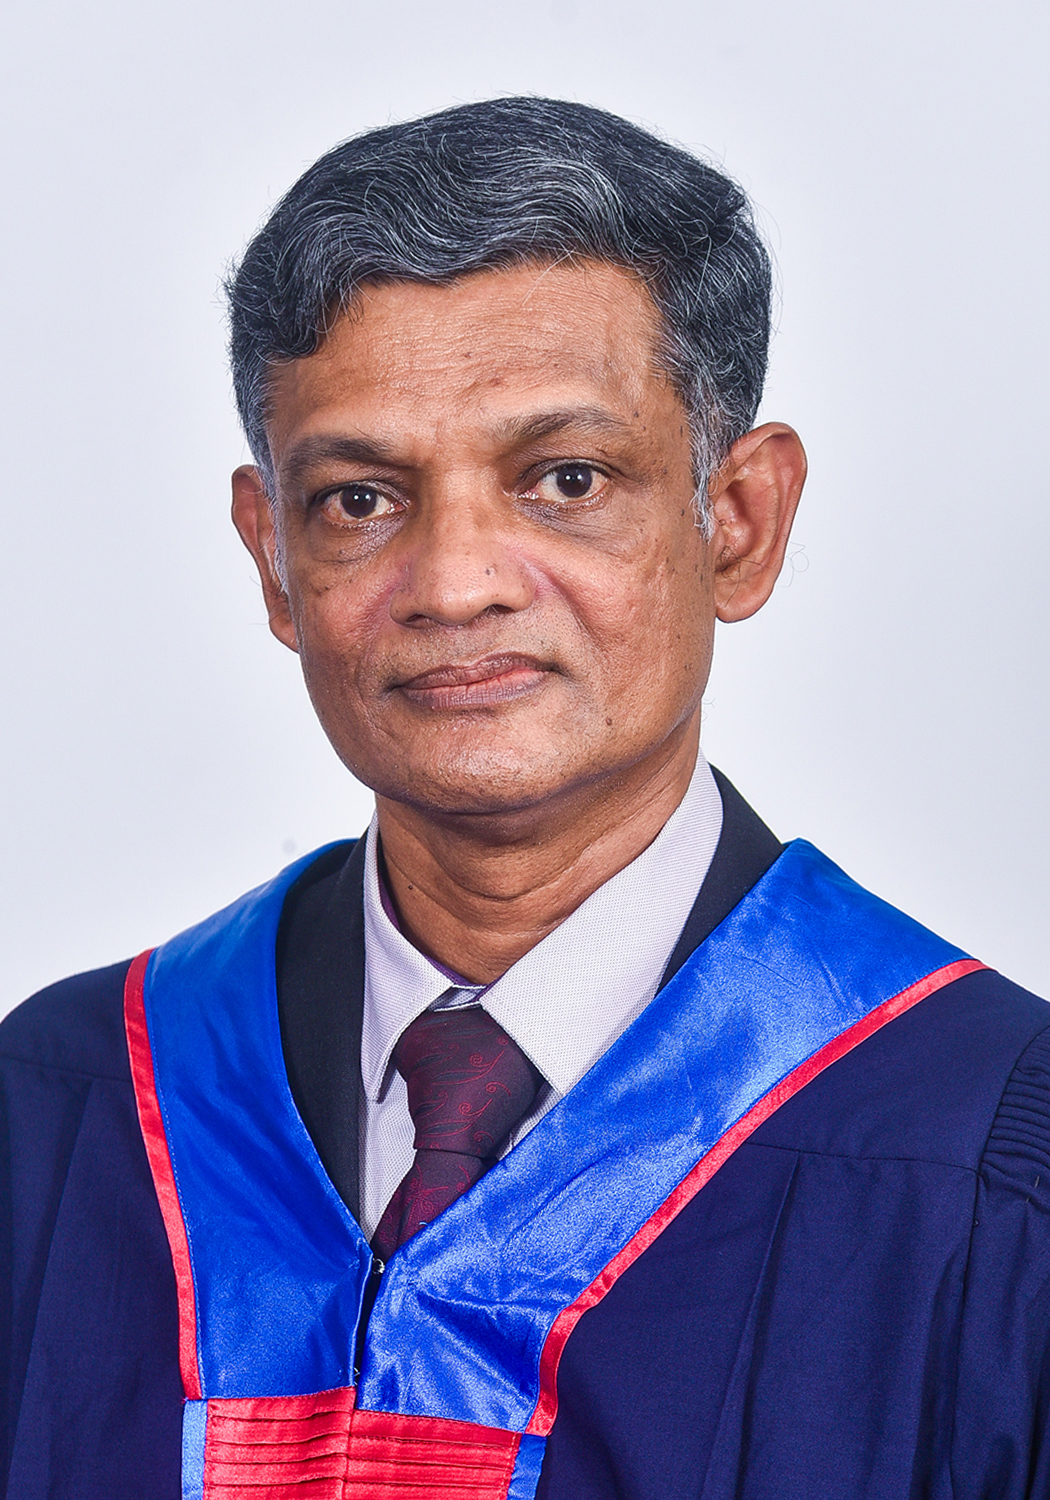 Prof Sampath Gunawardena